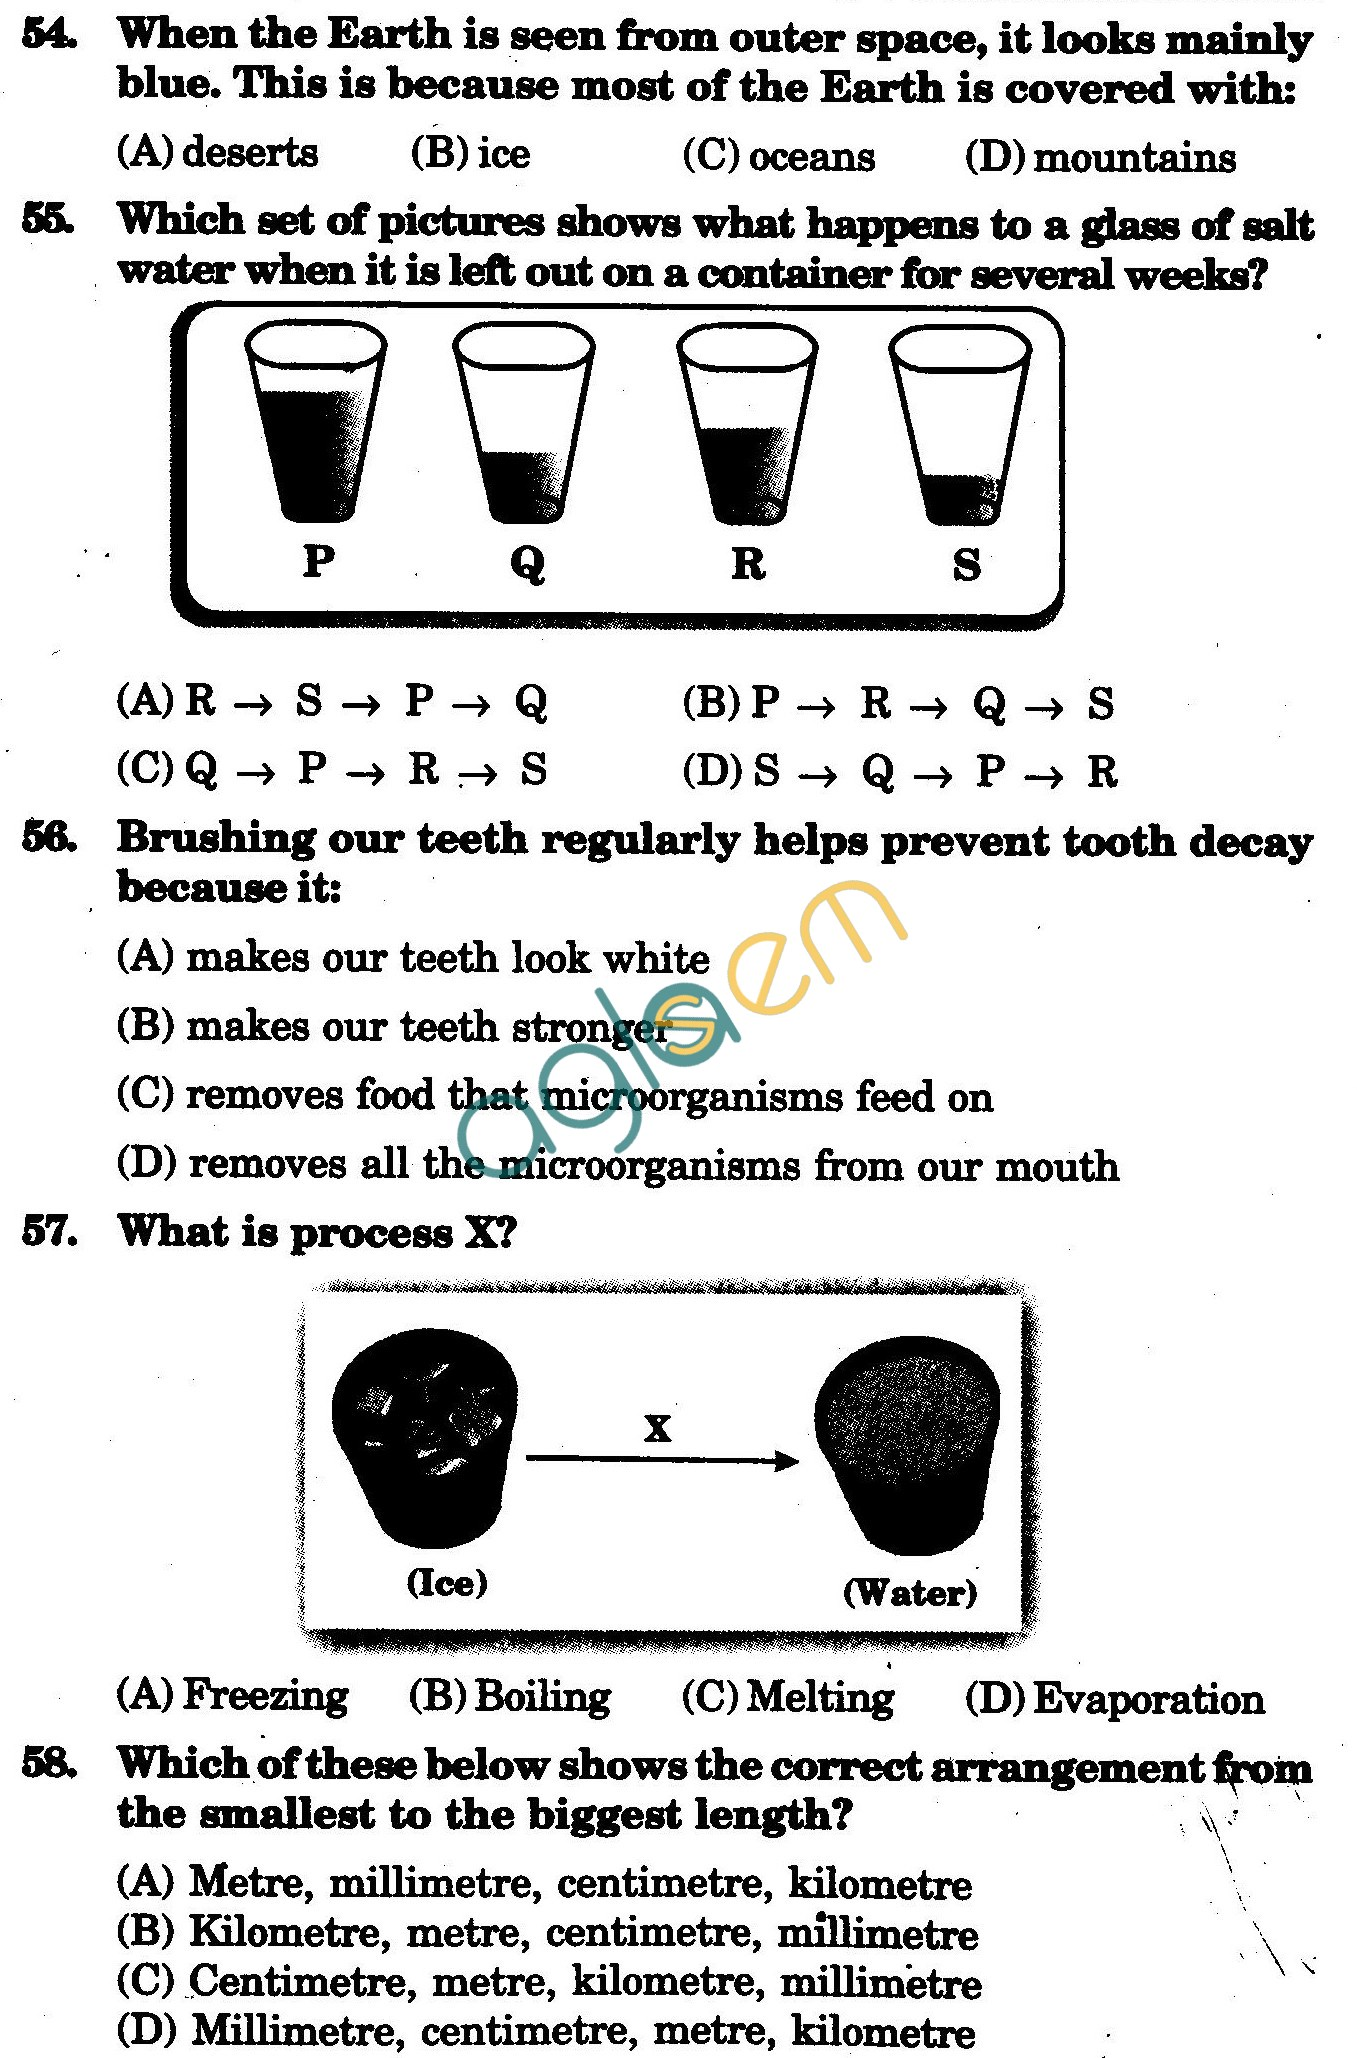 NSTSE 2009 Class III Question Paper with Answers - Science